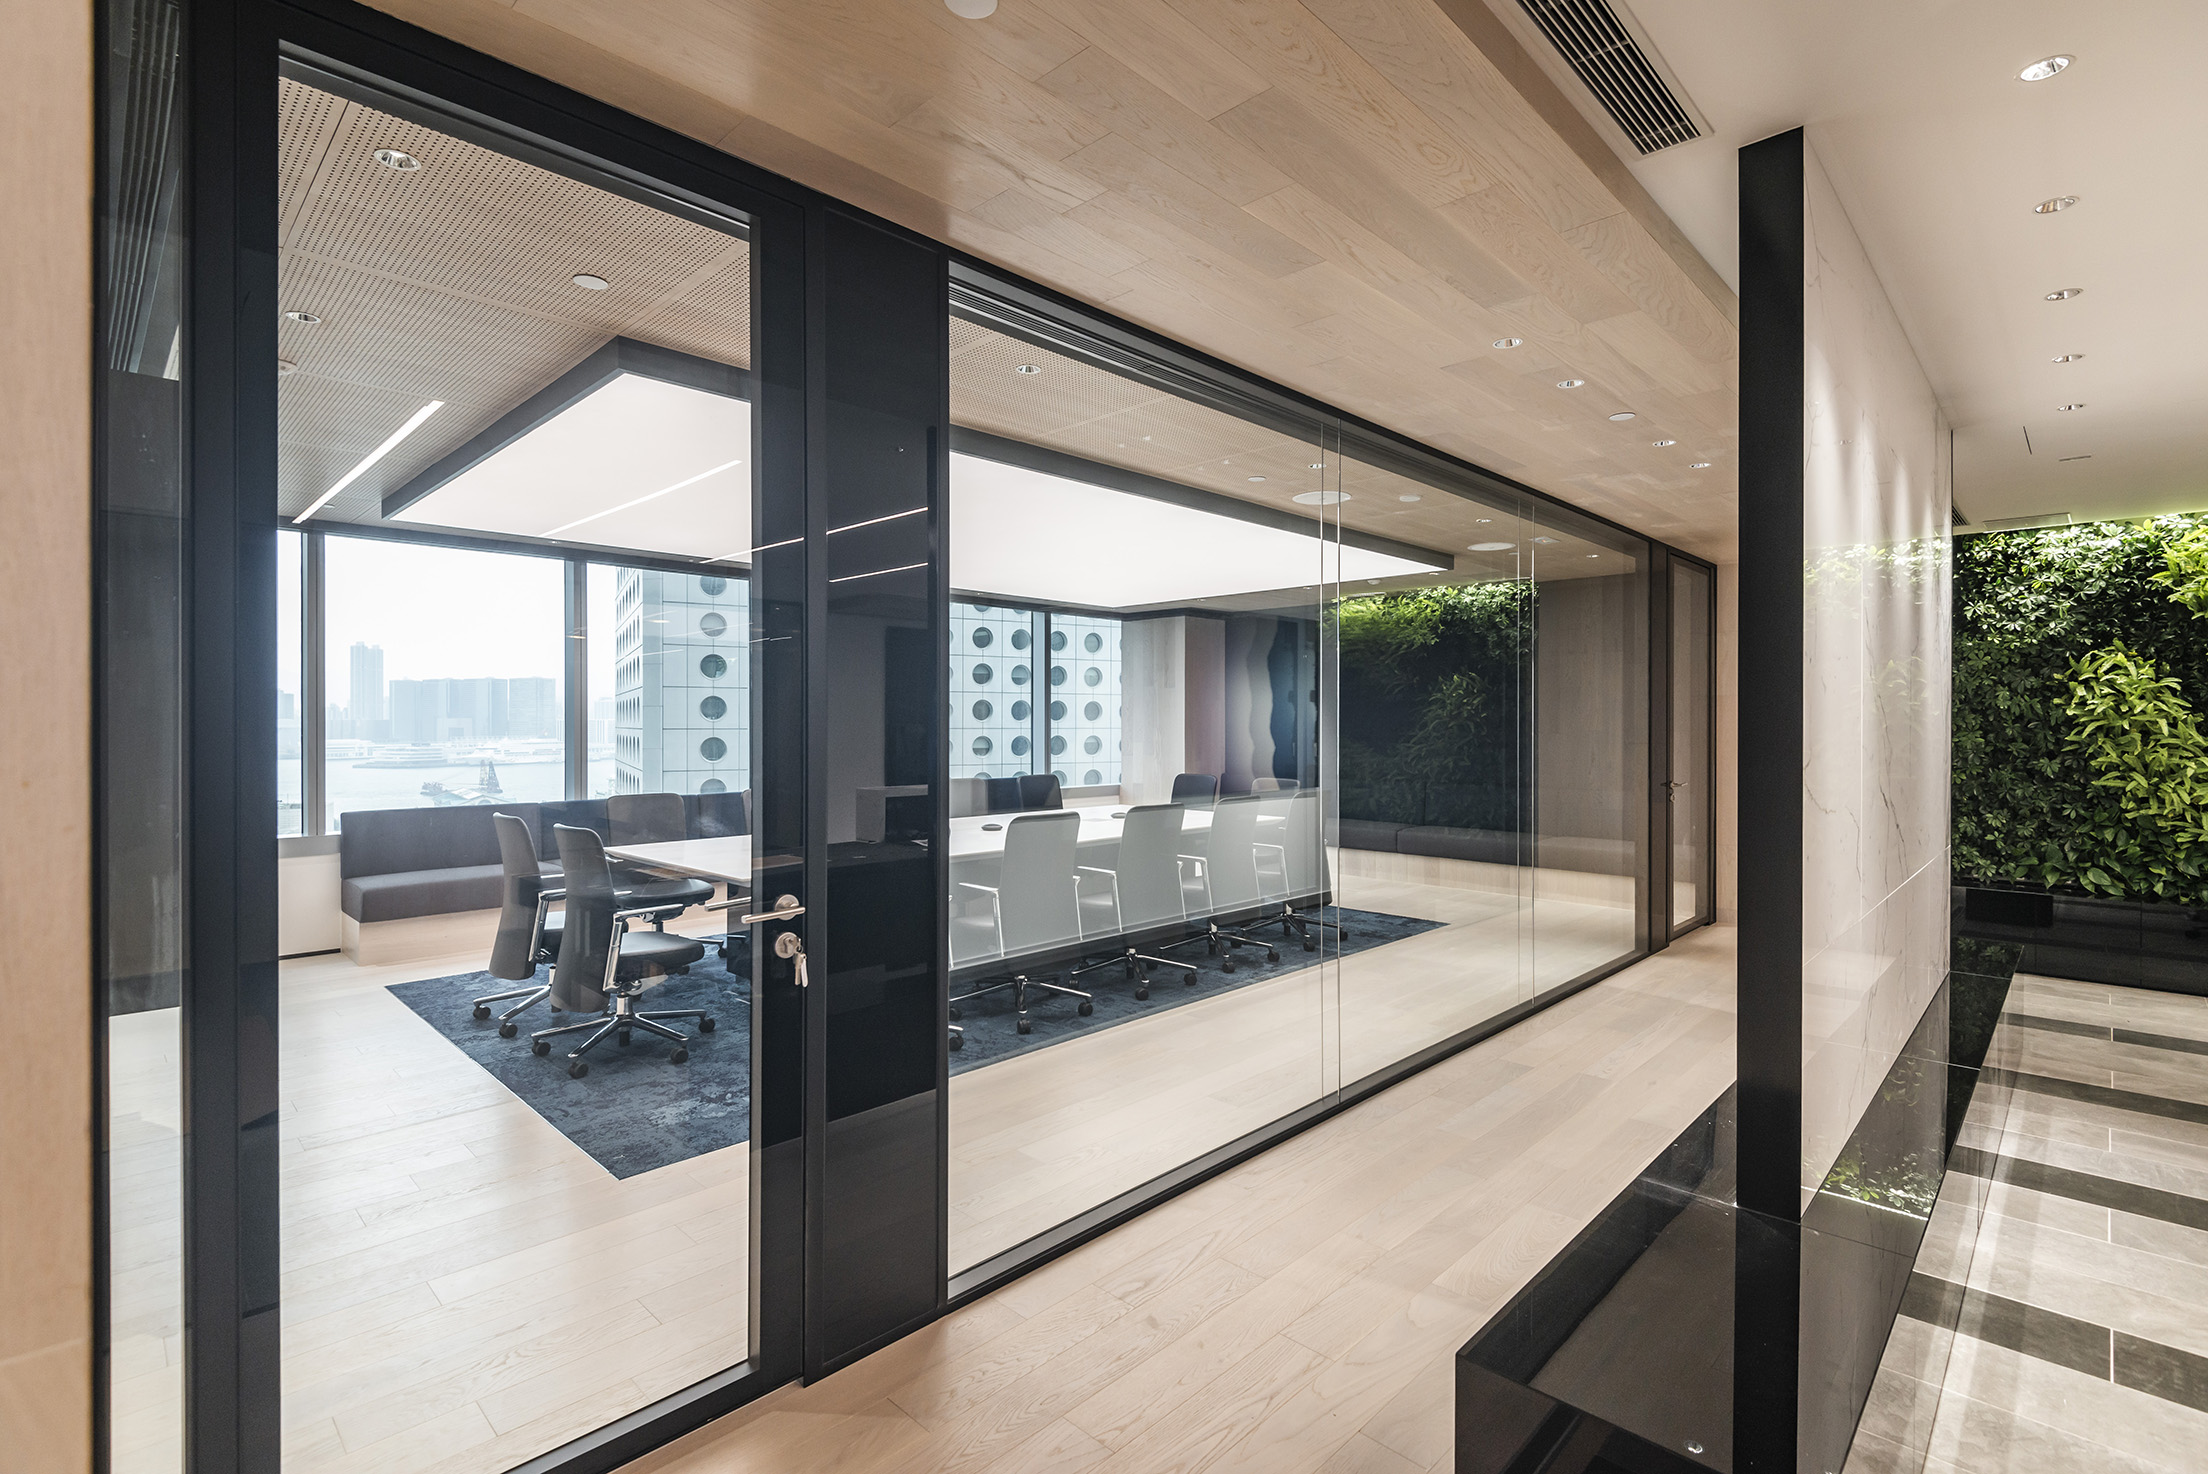 jeb-partitions-x-series-office-hk-15.jpg